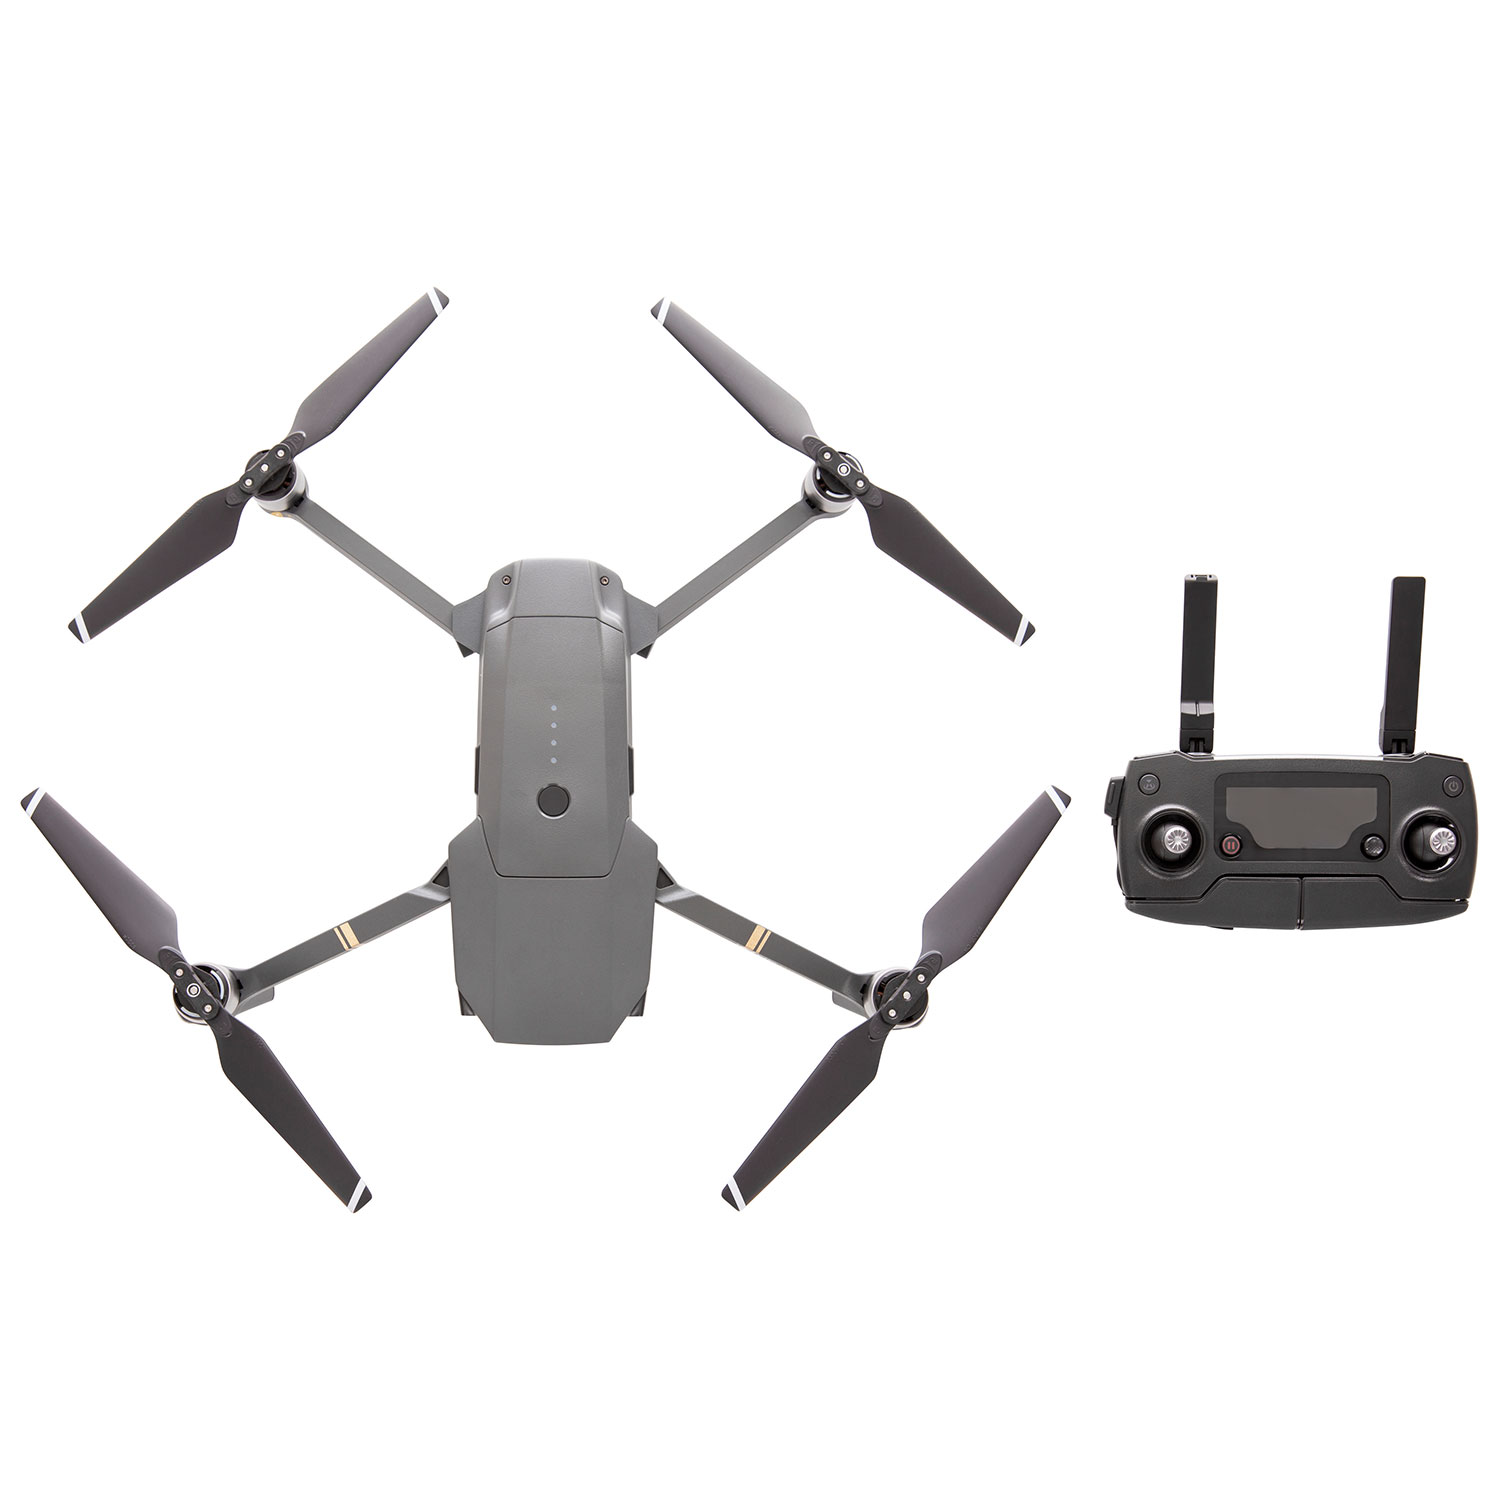 dji mavic pro quadcopter drone with 4k uhd camera & controller fly